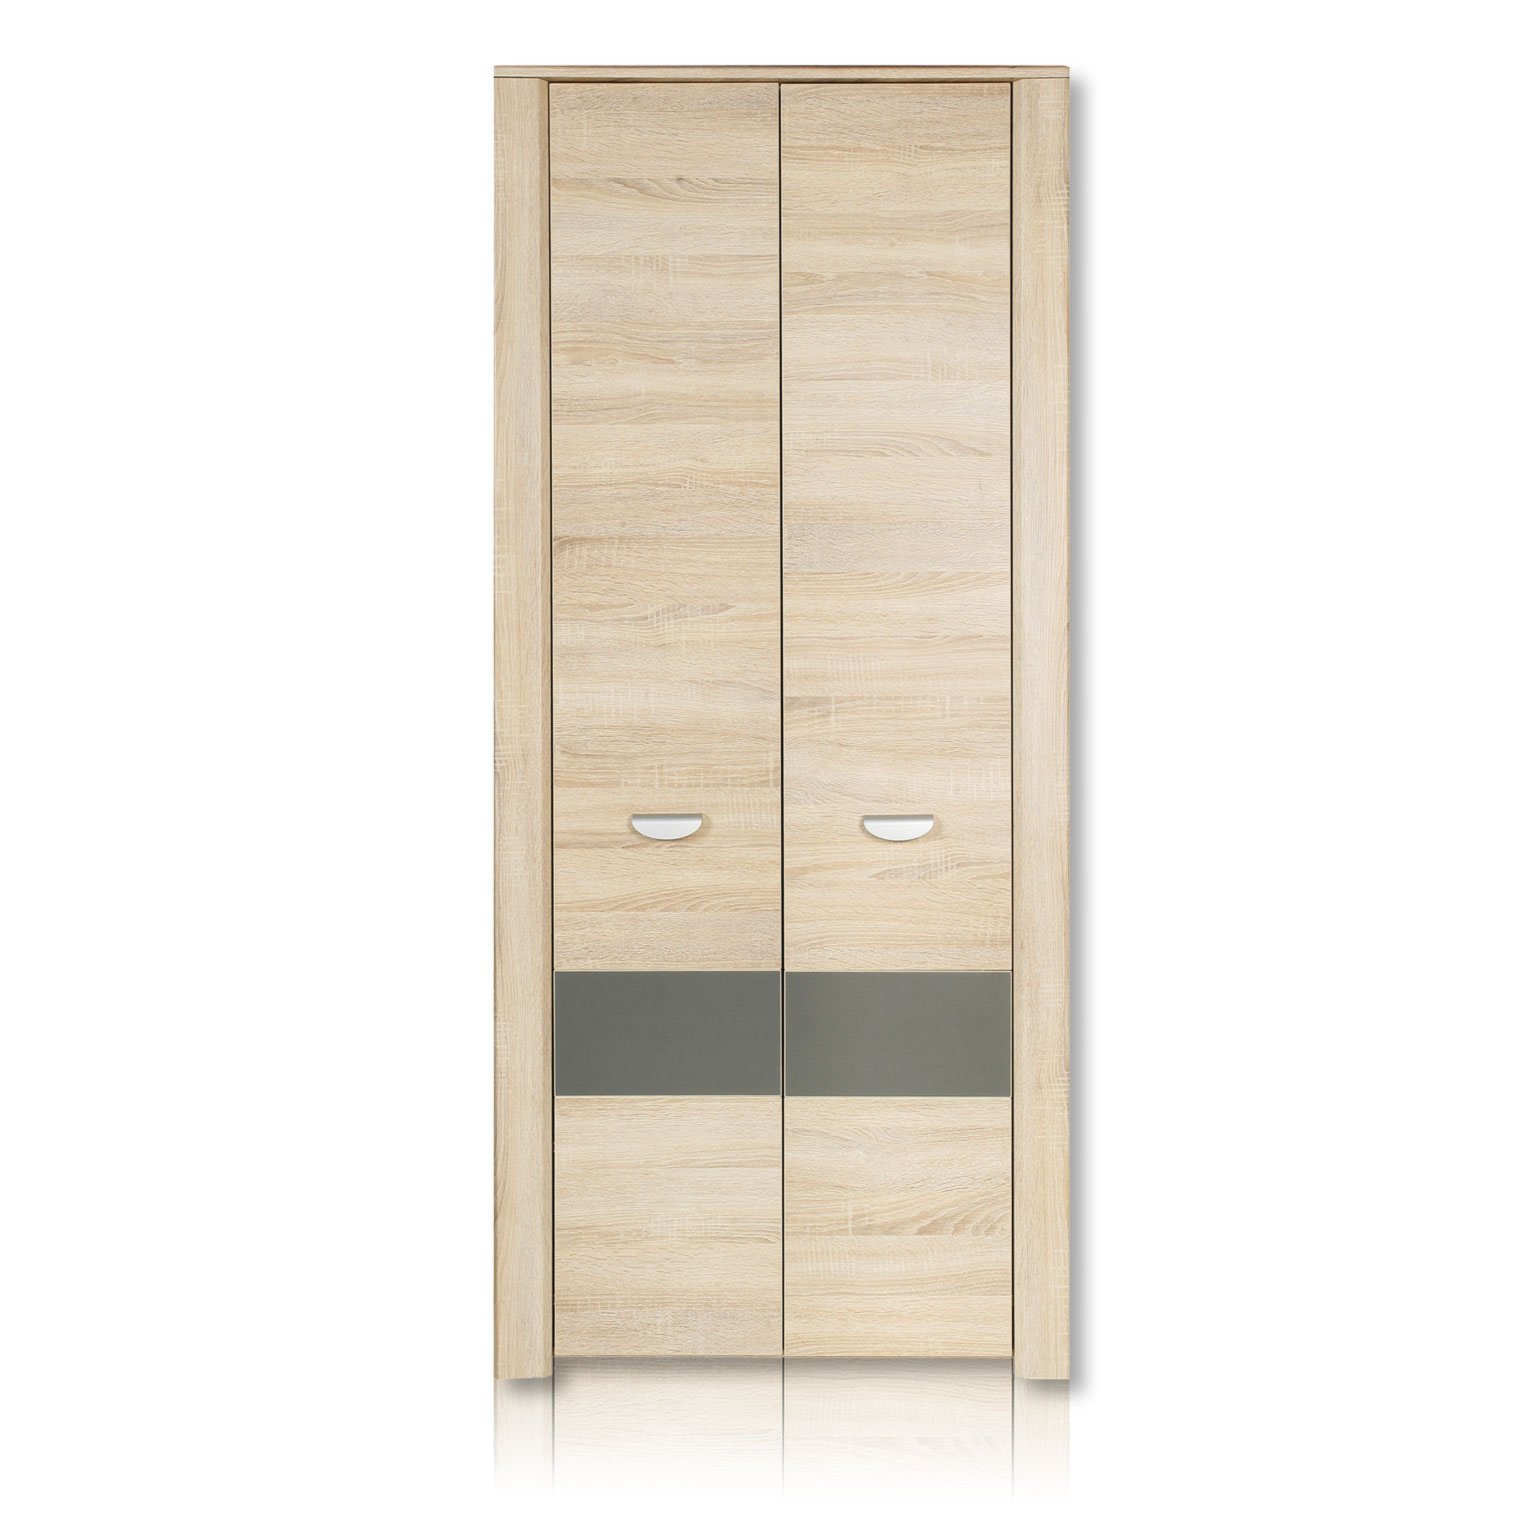 kleiderschrank yoop dreht renschr nke kleiderschr nke. Black Bedroom Furniture Sets. Home Design Ideas